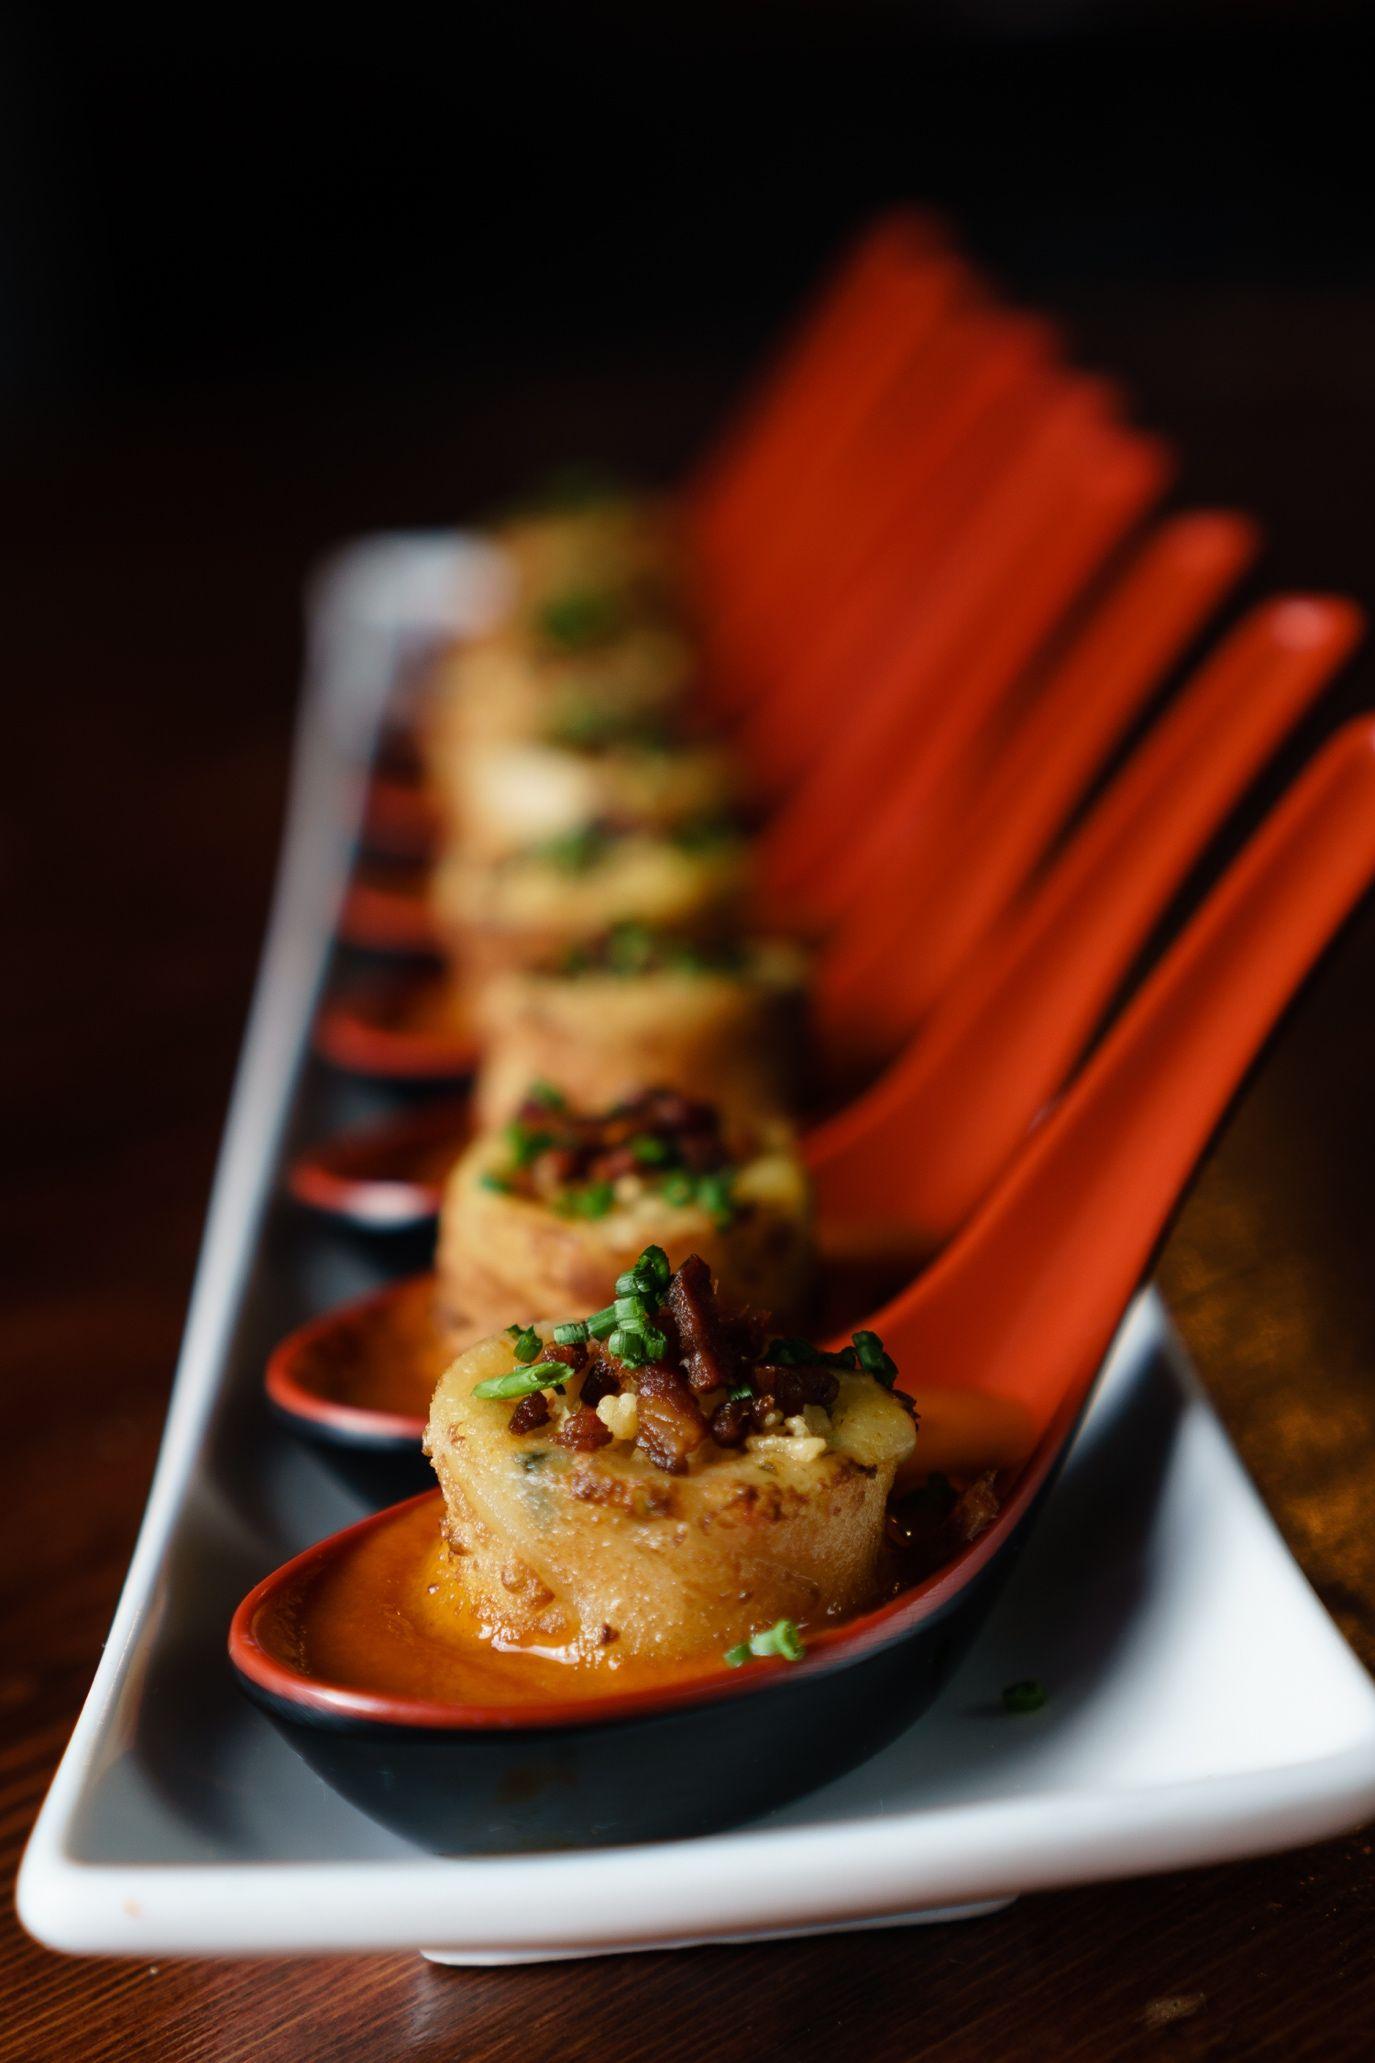 GRILLED CHEESE, SMOKED BACON & TOMATO SOUP DUMPLINGS 17